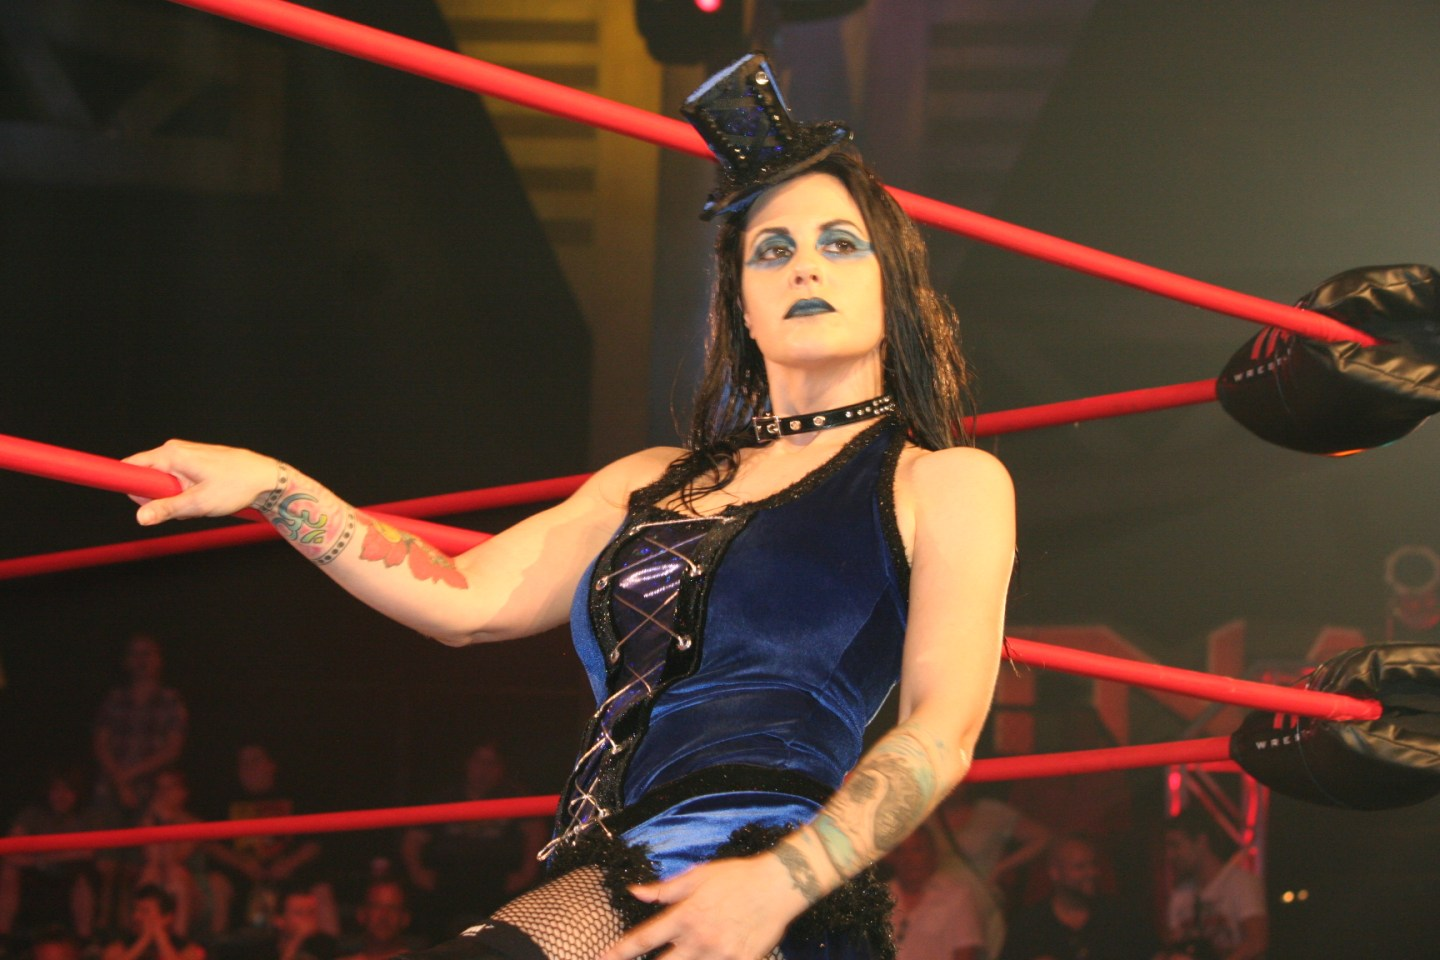 Daffney is set to appear for GAW TV on July 21